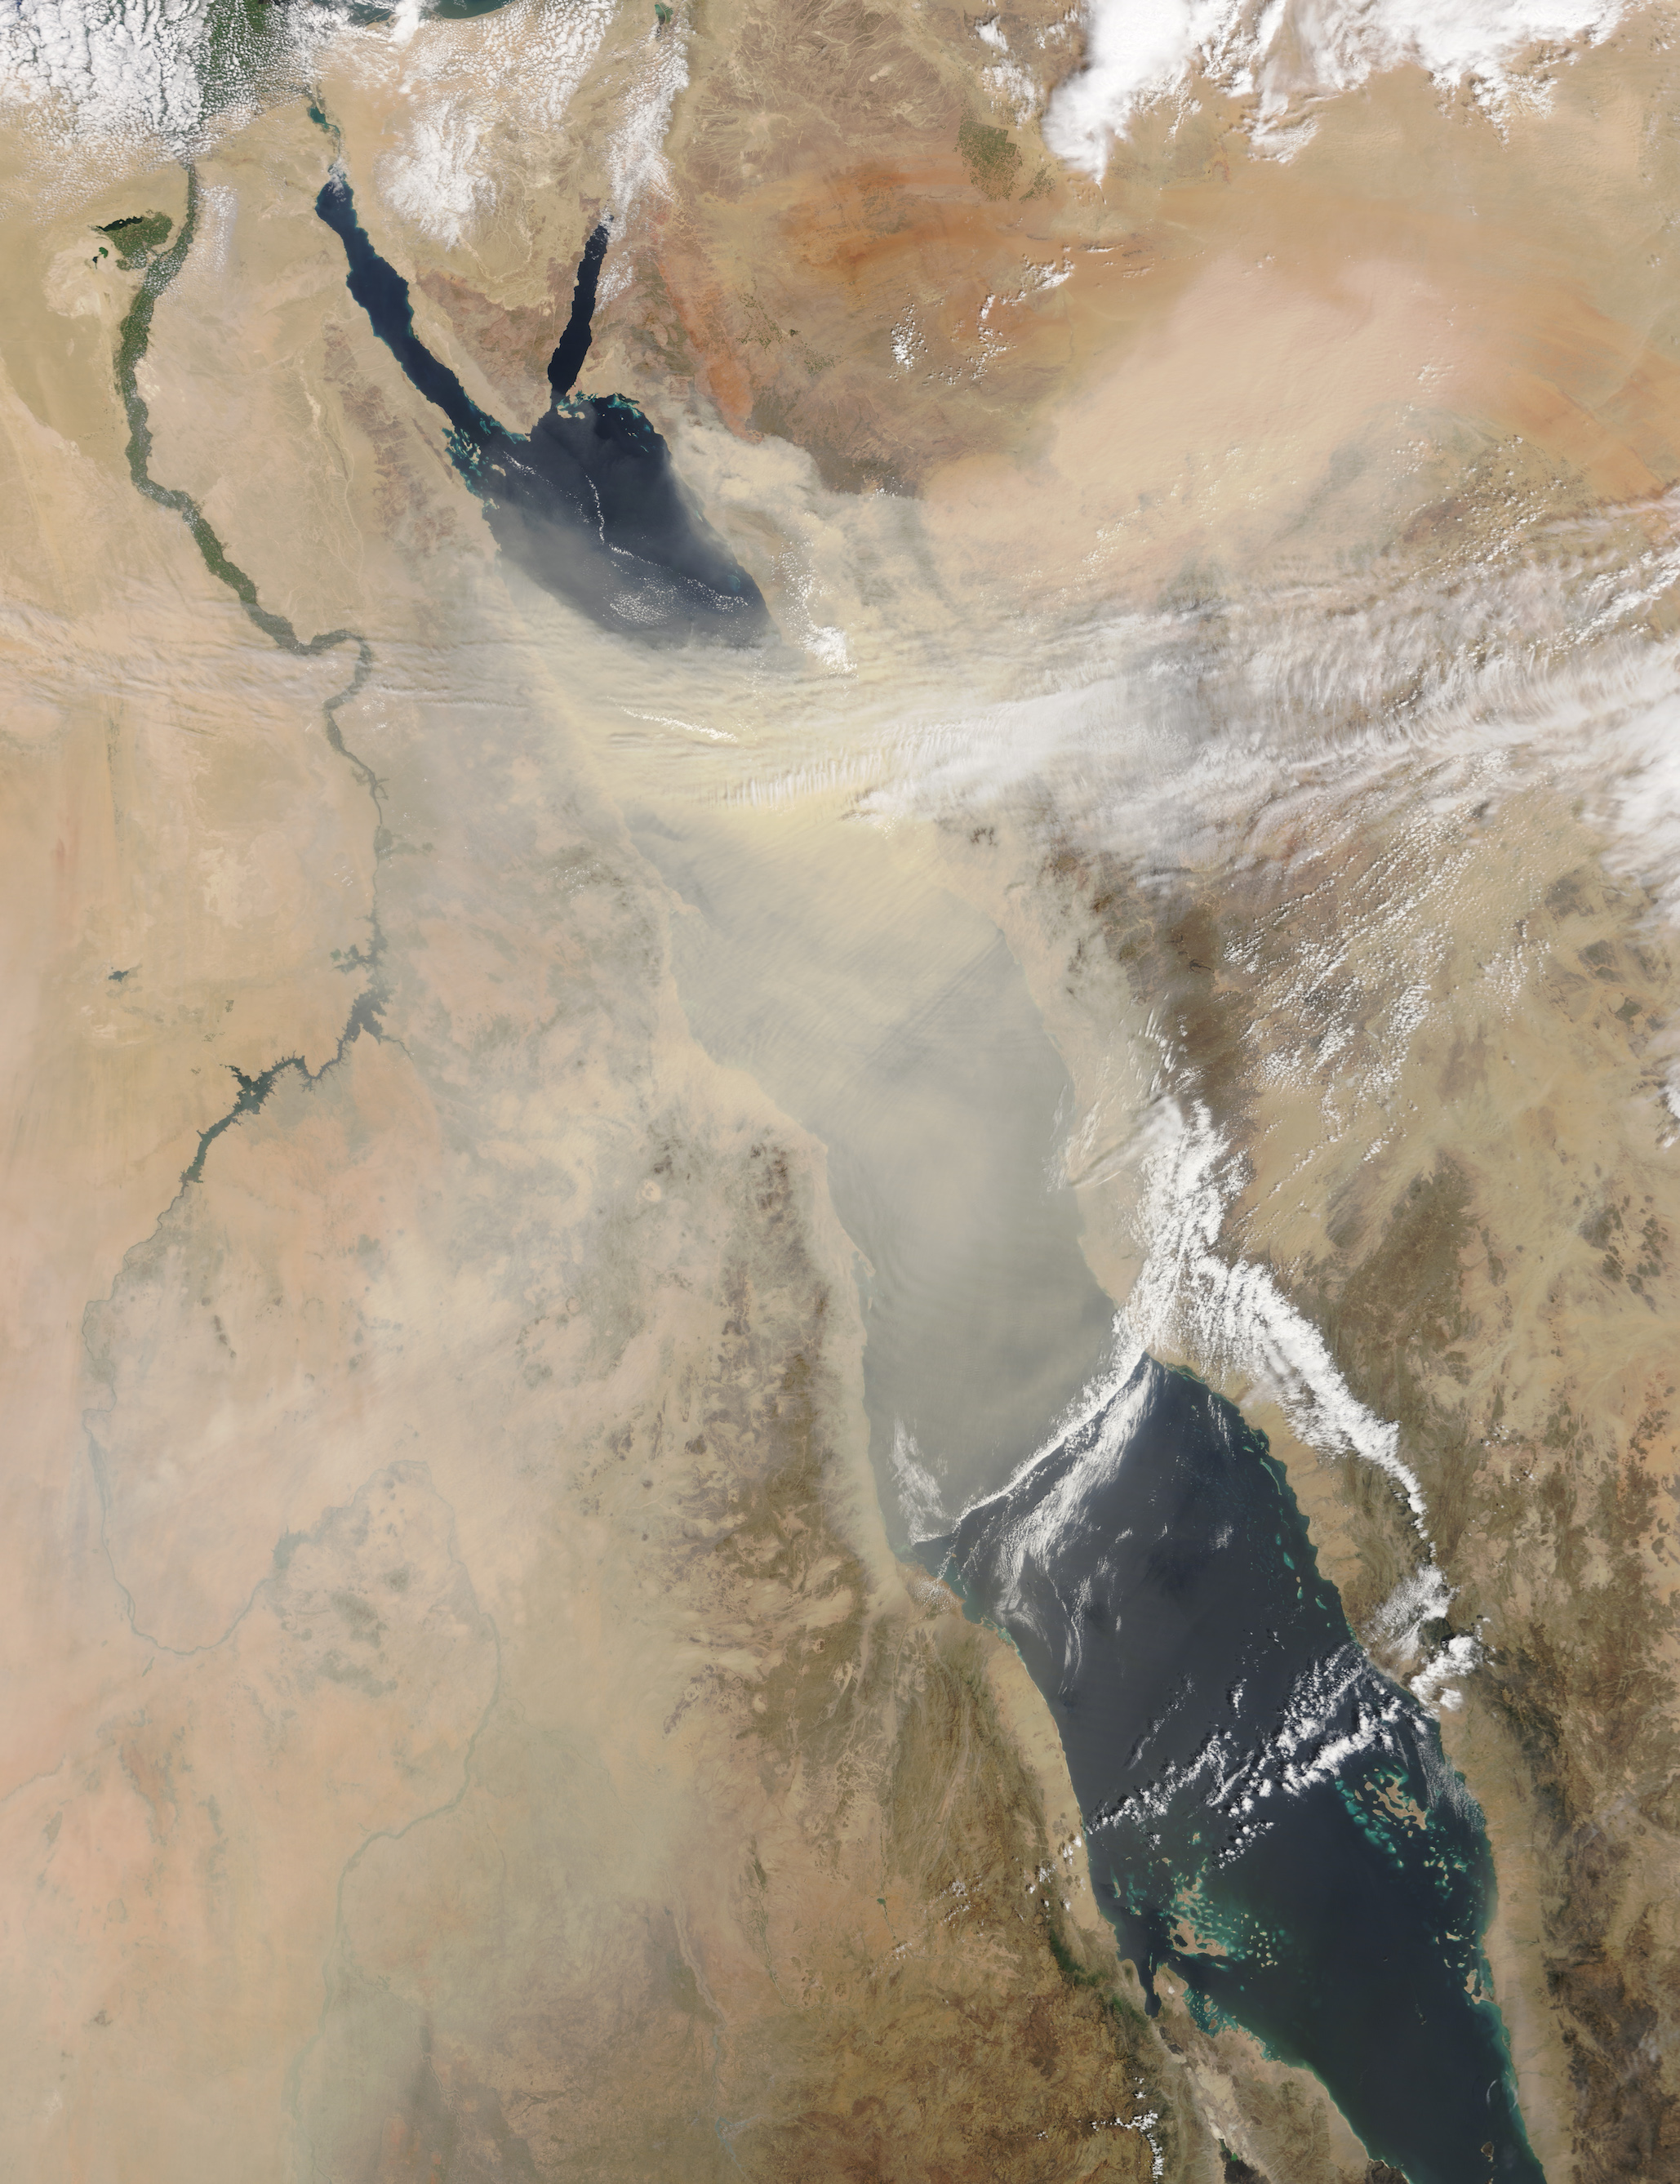 Today's Image of the Day comes thanks to the NASA Earth Observatory and features a look at a thick plume of dust floating in the air over the Red Sea.